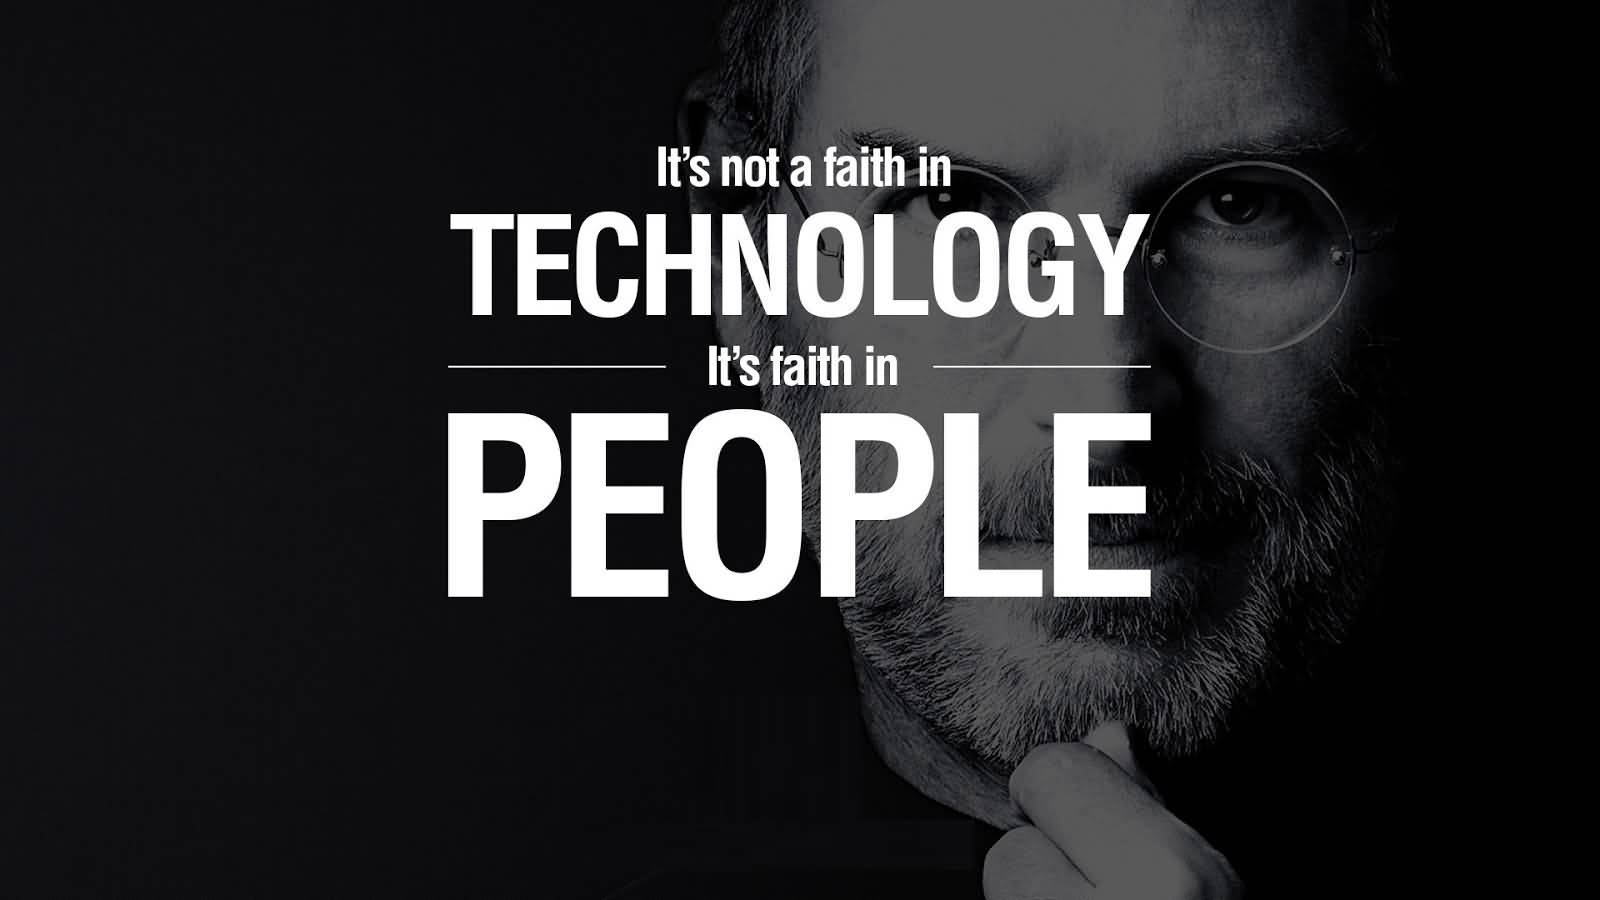 Quotes On Technology Impressive Top 20 Technology Quotes Tech Quotes Best Technology Status